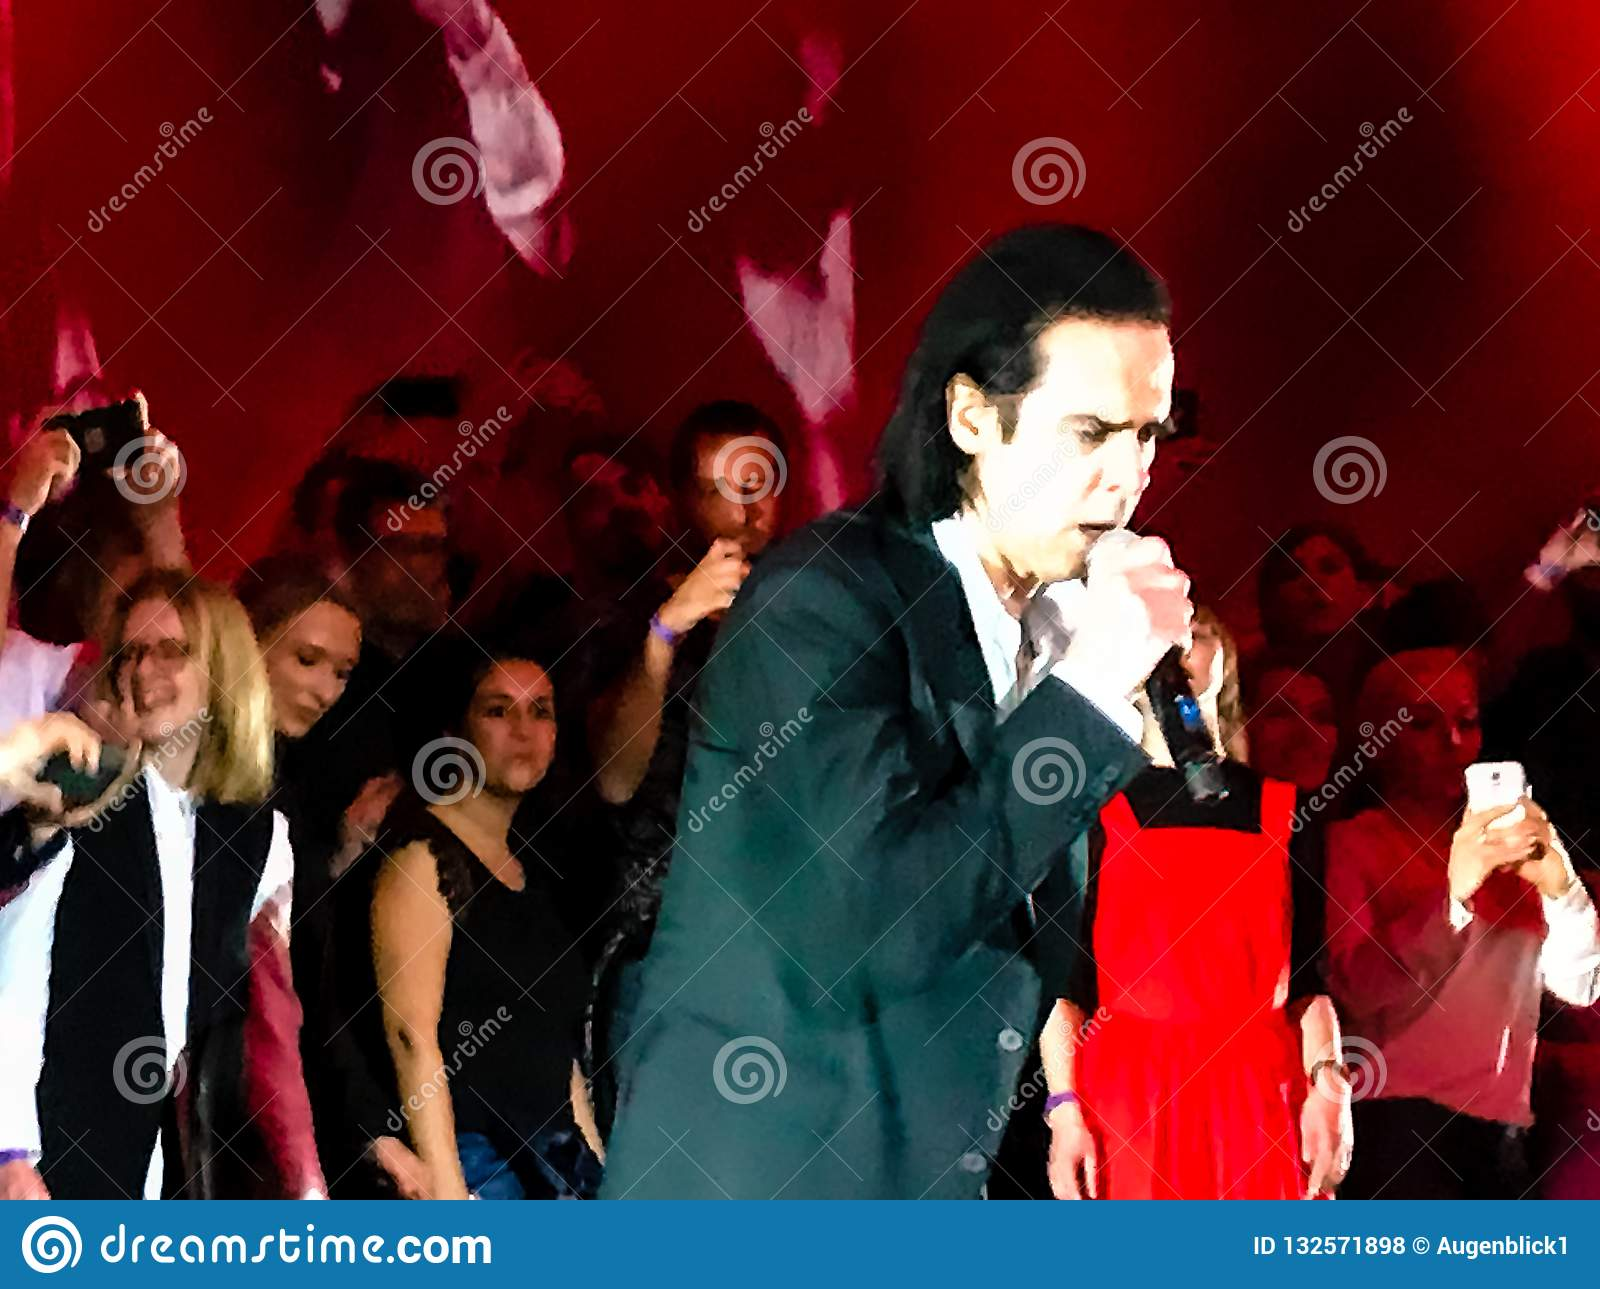 Nick Cave & The Bad Seeds in Concert in Vienna